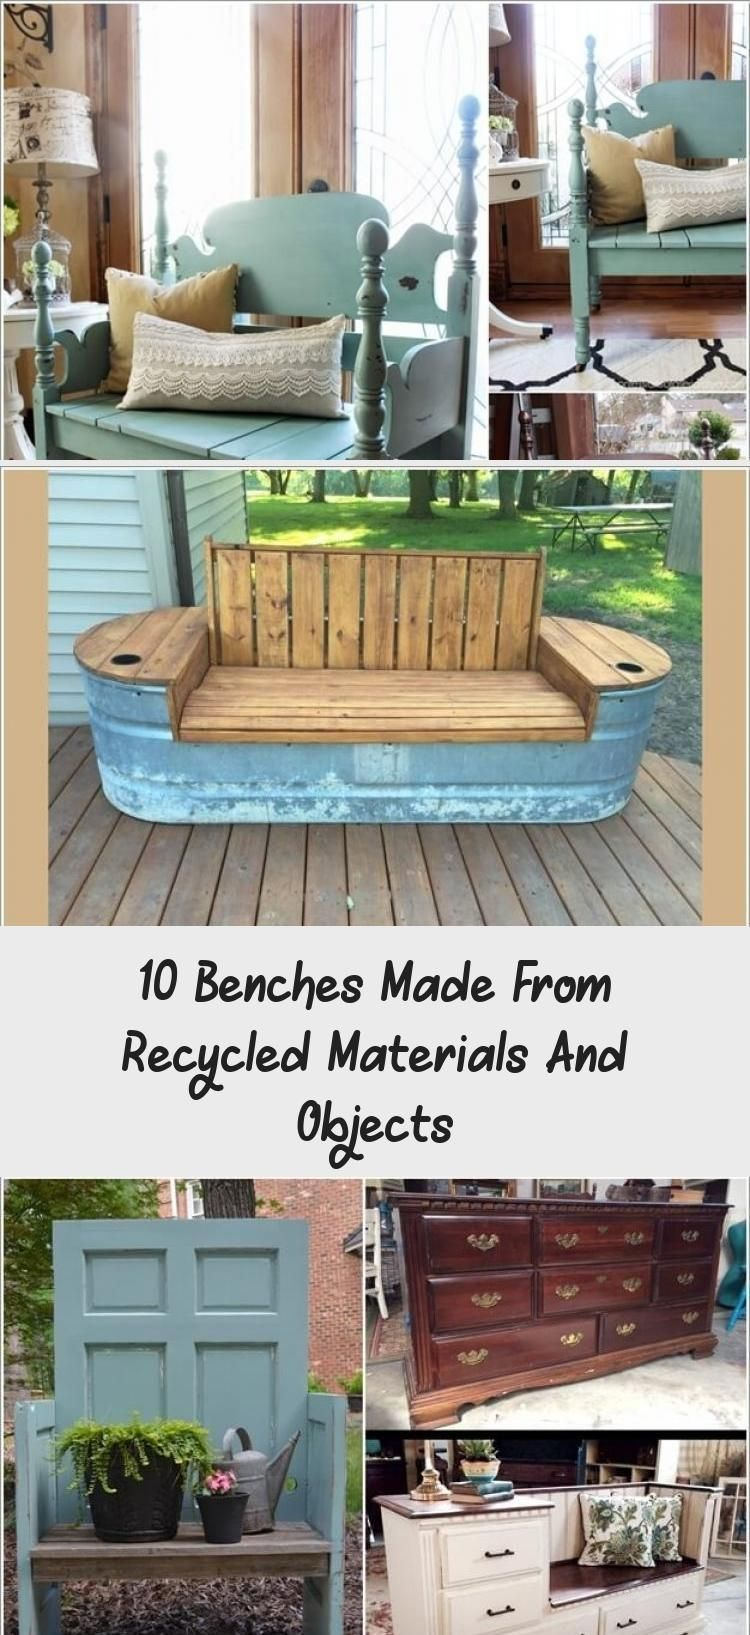 10 Benches Made From Recycled Materials And Objects Home Decor Diy Benches Benches Decor Diy Decor Rustic Outdoor Furniture Outdoor Furniture Design